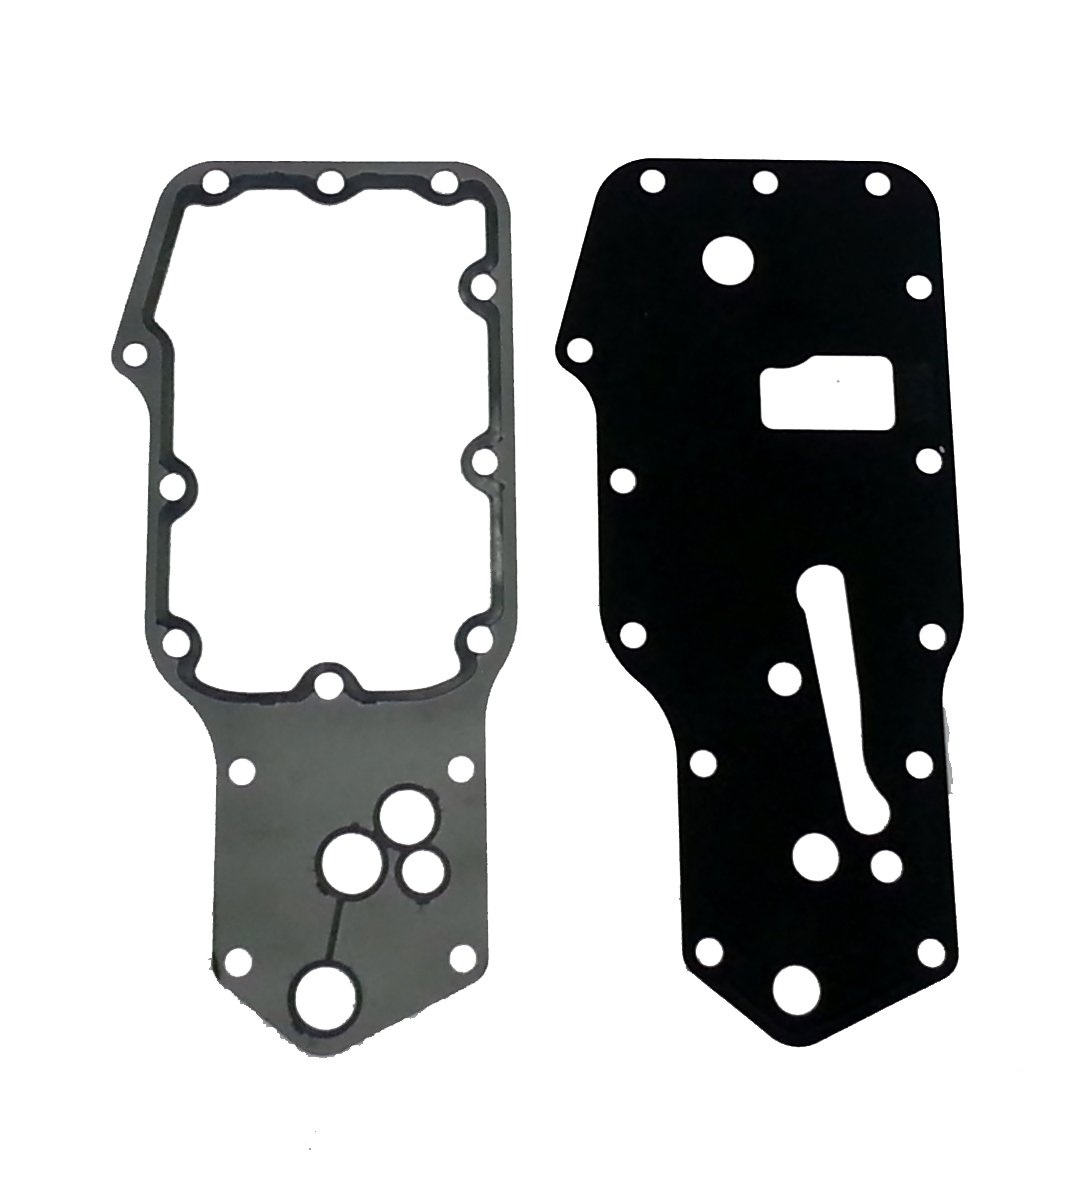 New Replacement Heavy Duty Oil Cooler /& Gasket Kit 3957544 for Oliver White Cummins Engines CASE-IH